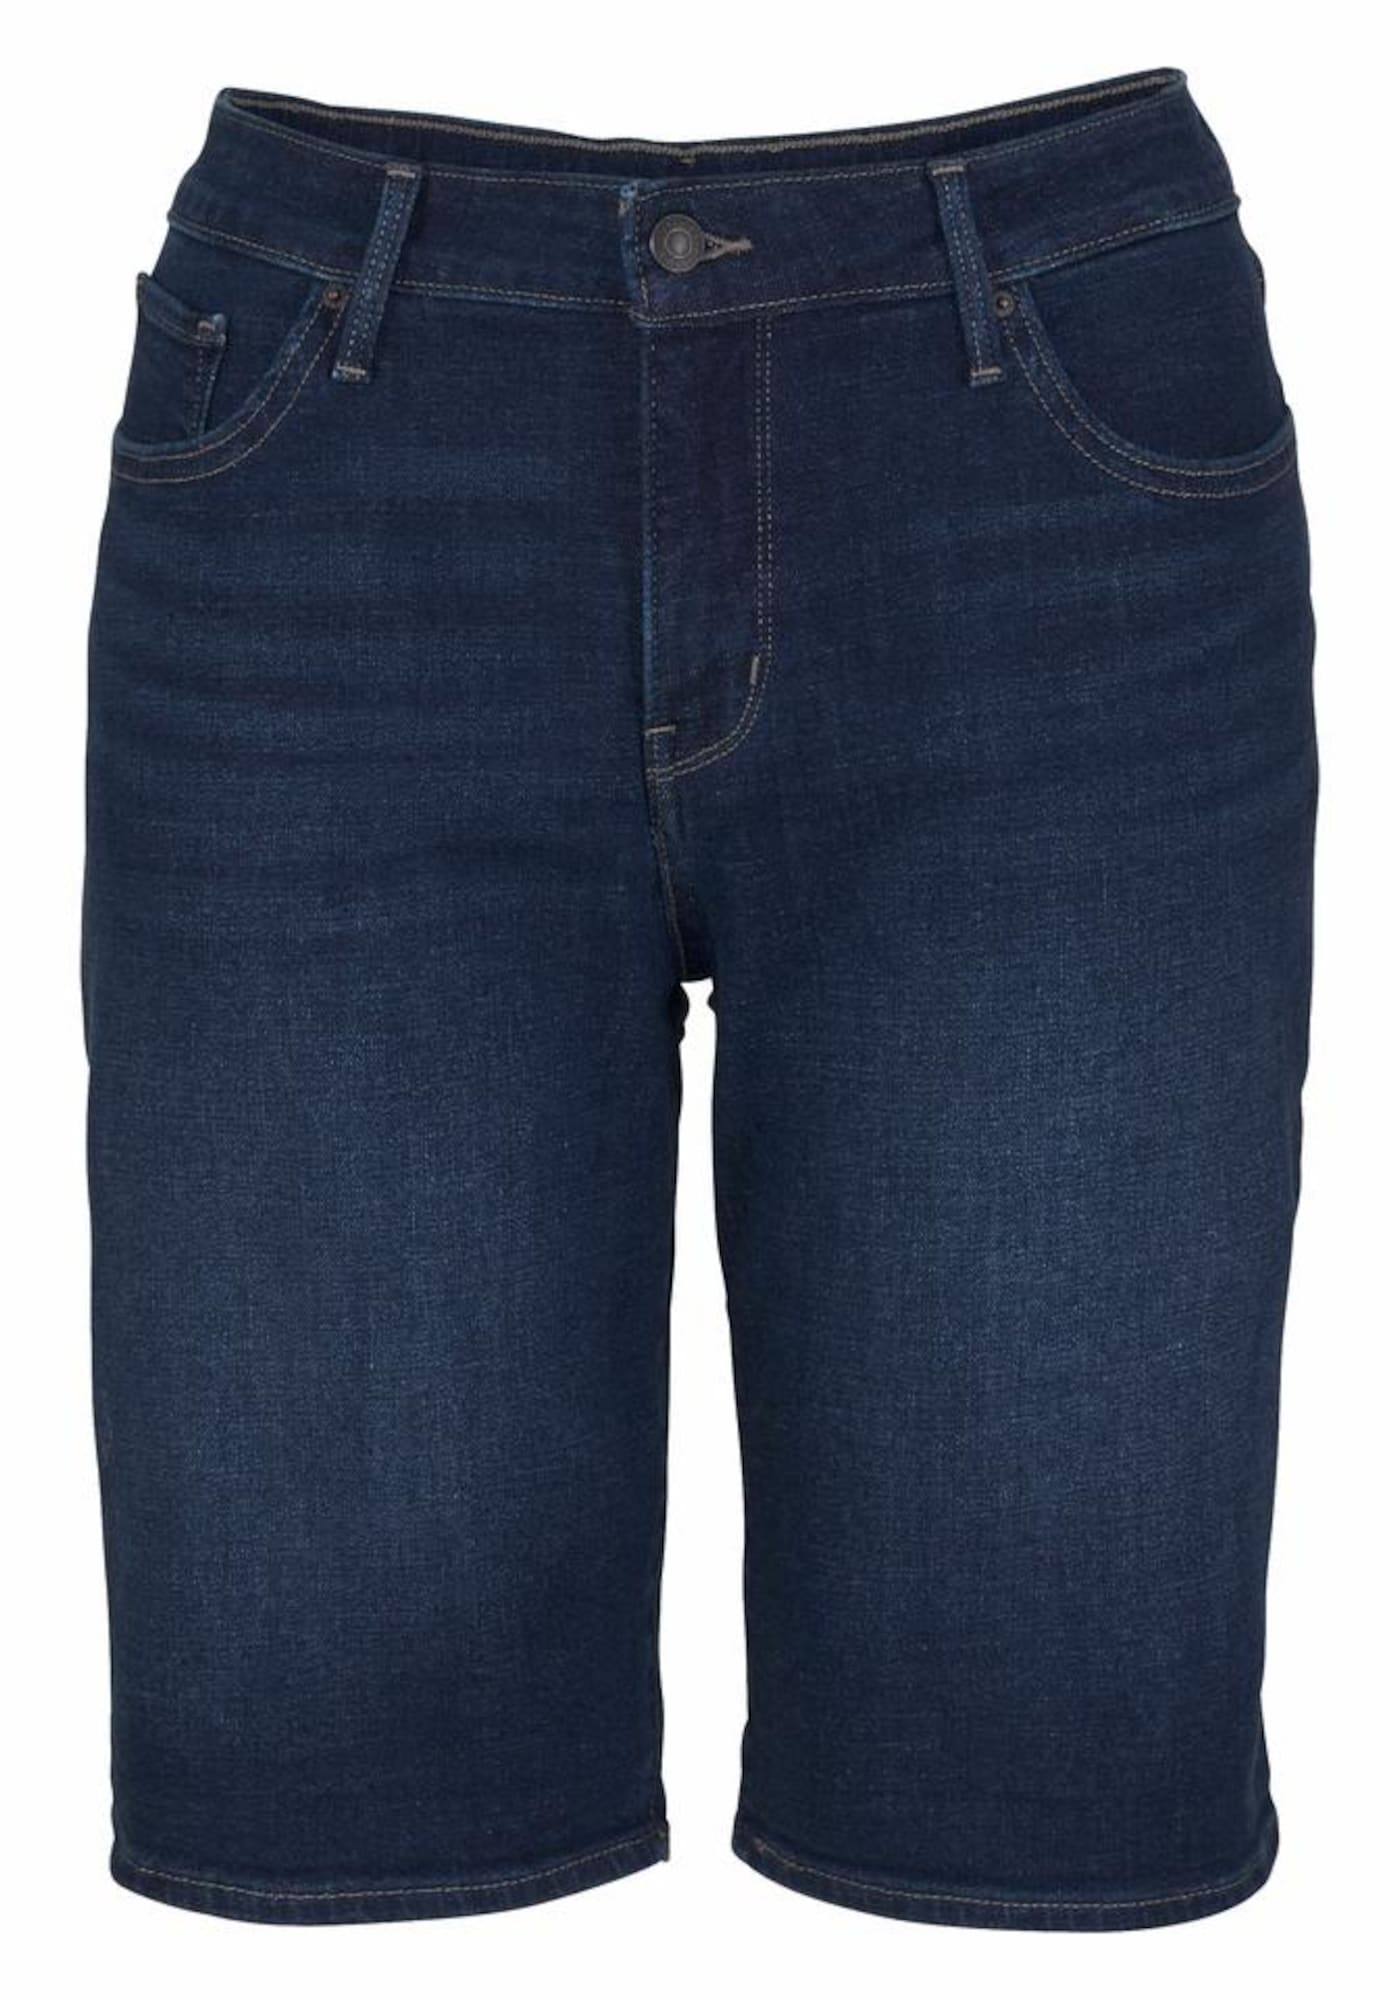 LEVI'S Dames Jeans PL Shaping Bermuda donkerblauw